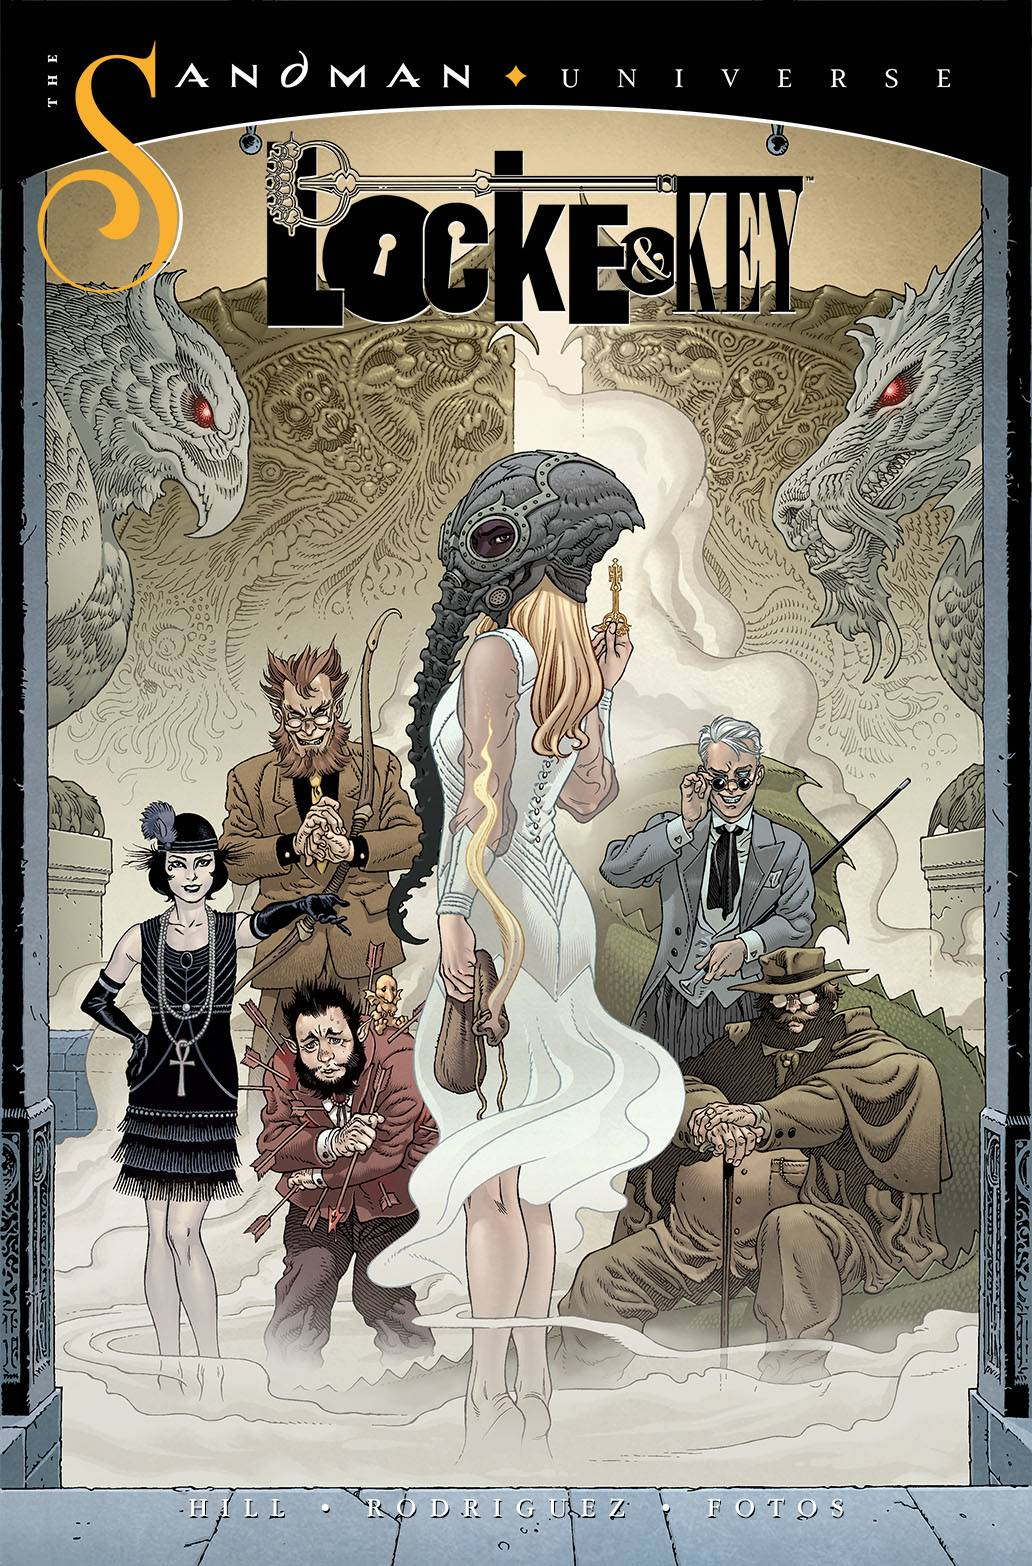 LOCKE & KEY SANDMAN HELL & GONE #1 CVR A RODRIGUEZ